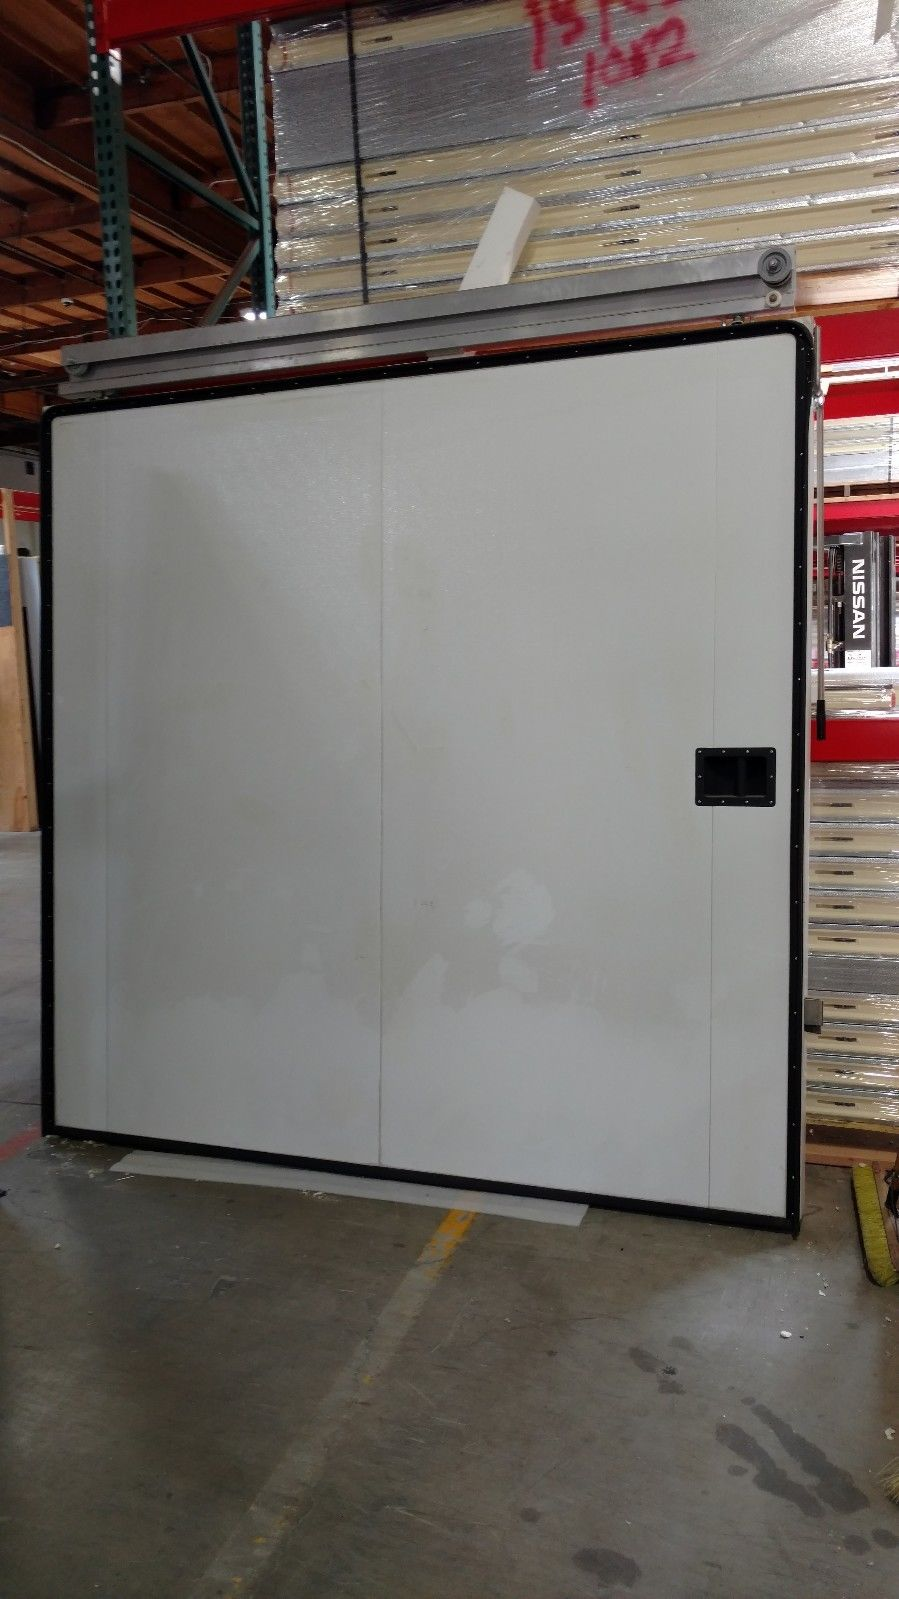 8 39 x 8 39 left opening manual sliding door commercial cooling for 10 door walk in cooler